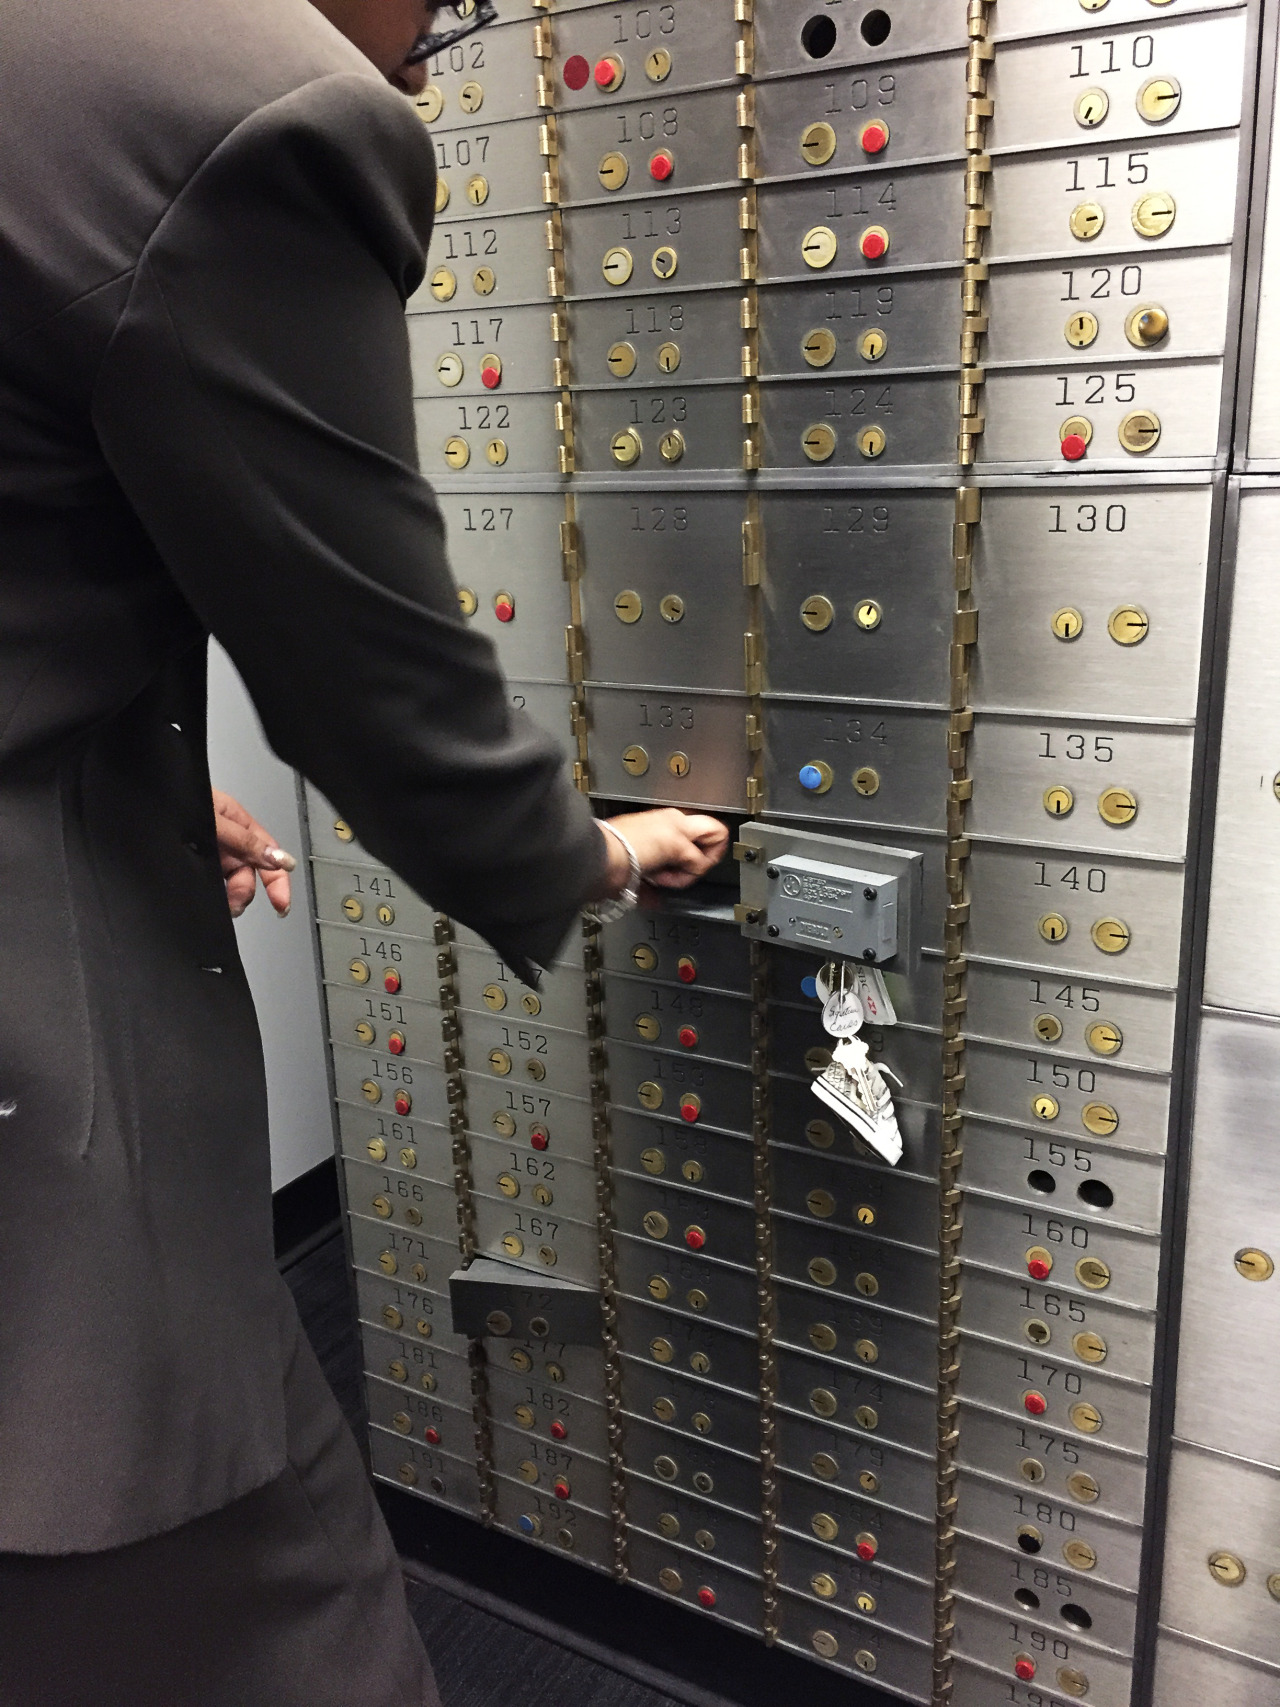 Meyohas sets aside an unframed archival chromogenic print in a bank vault, so that 25 square inches of photography backs every BitchCoin.  Once the print is locked in a vault, an equivalent number of BitchCoins—corresponding to the size of that BitchCoin-backed print—is then released into circulation.